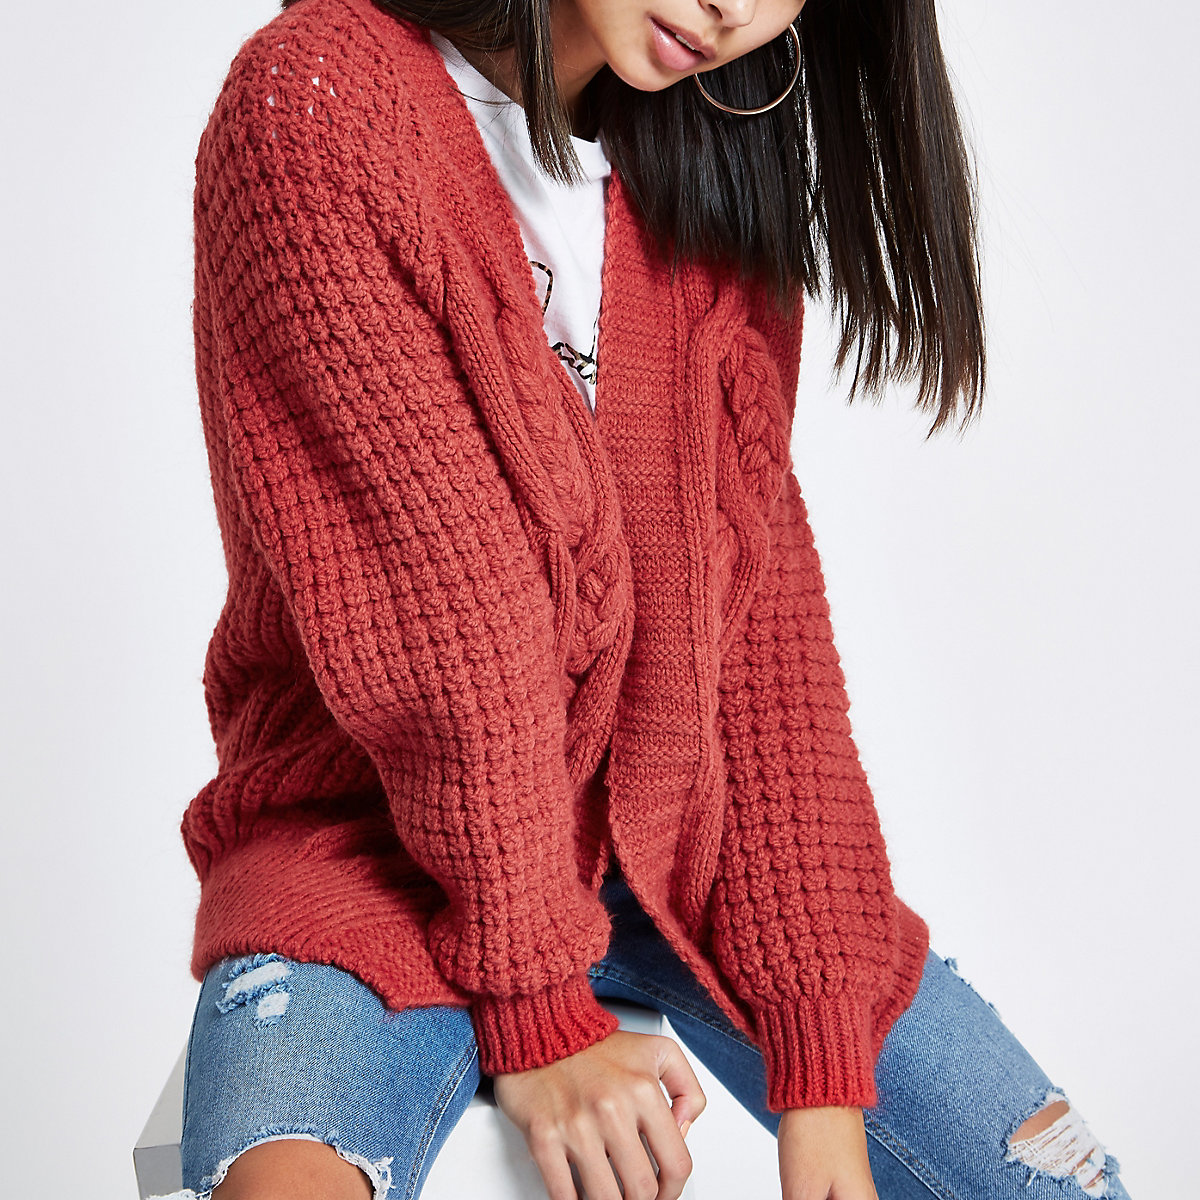 Coral pink cable knit cardigan